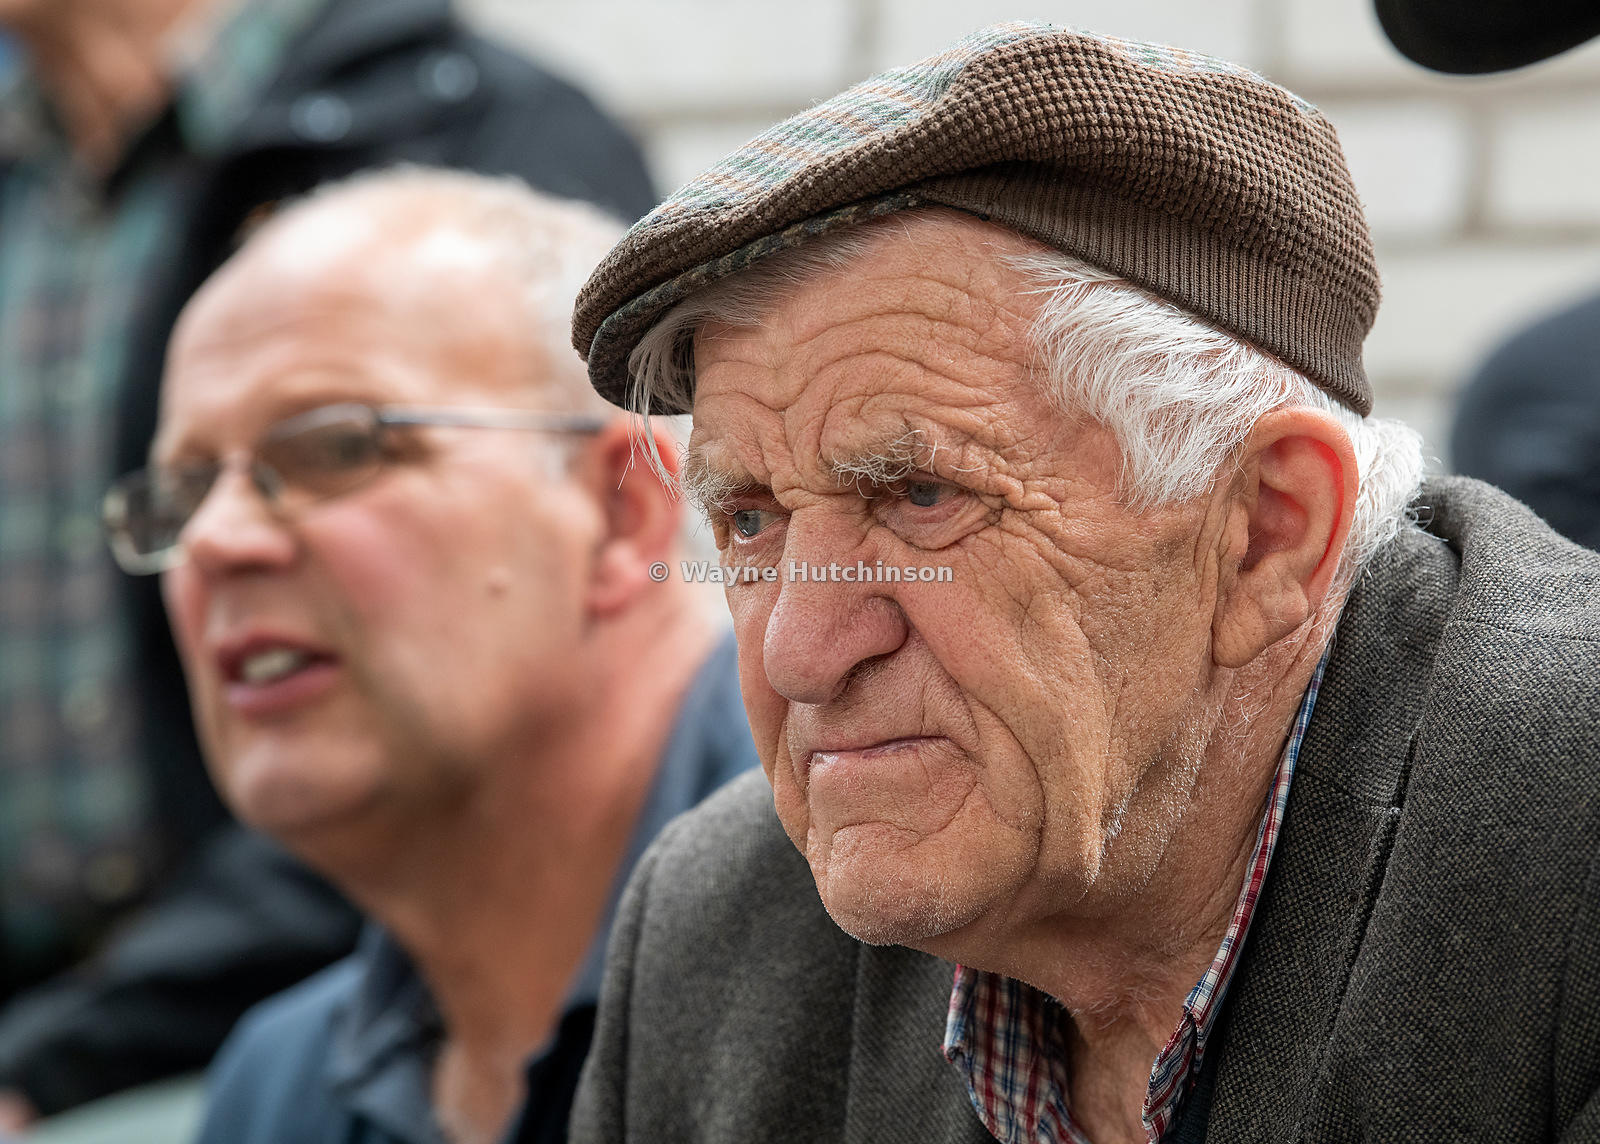 Old farmer watching trade at a livestock auction market, Lancashire, UK.